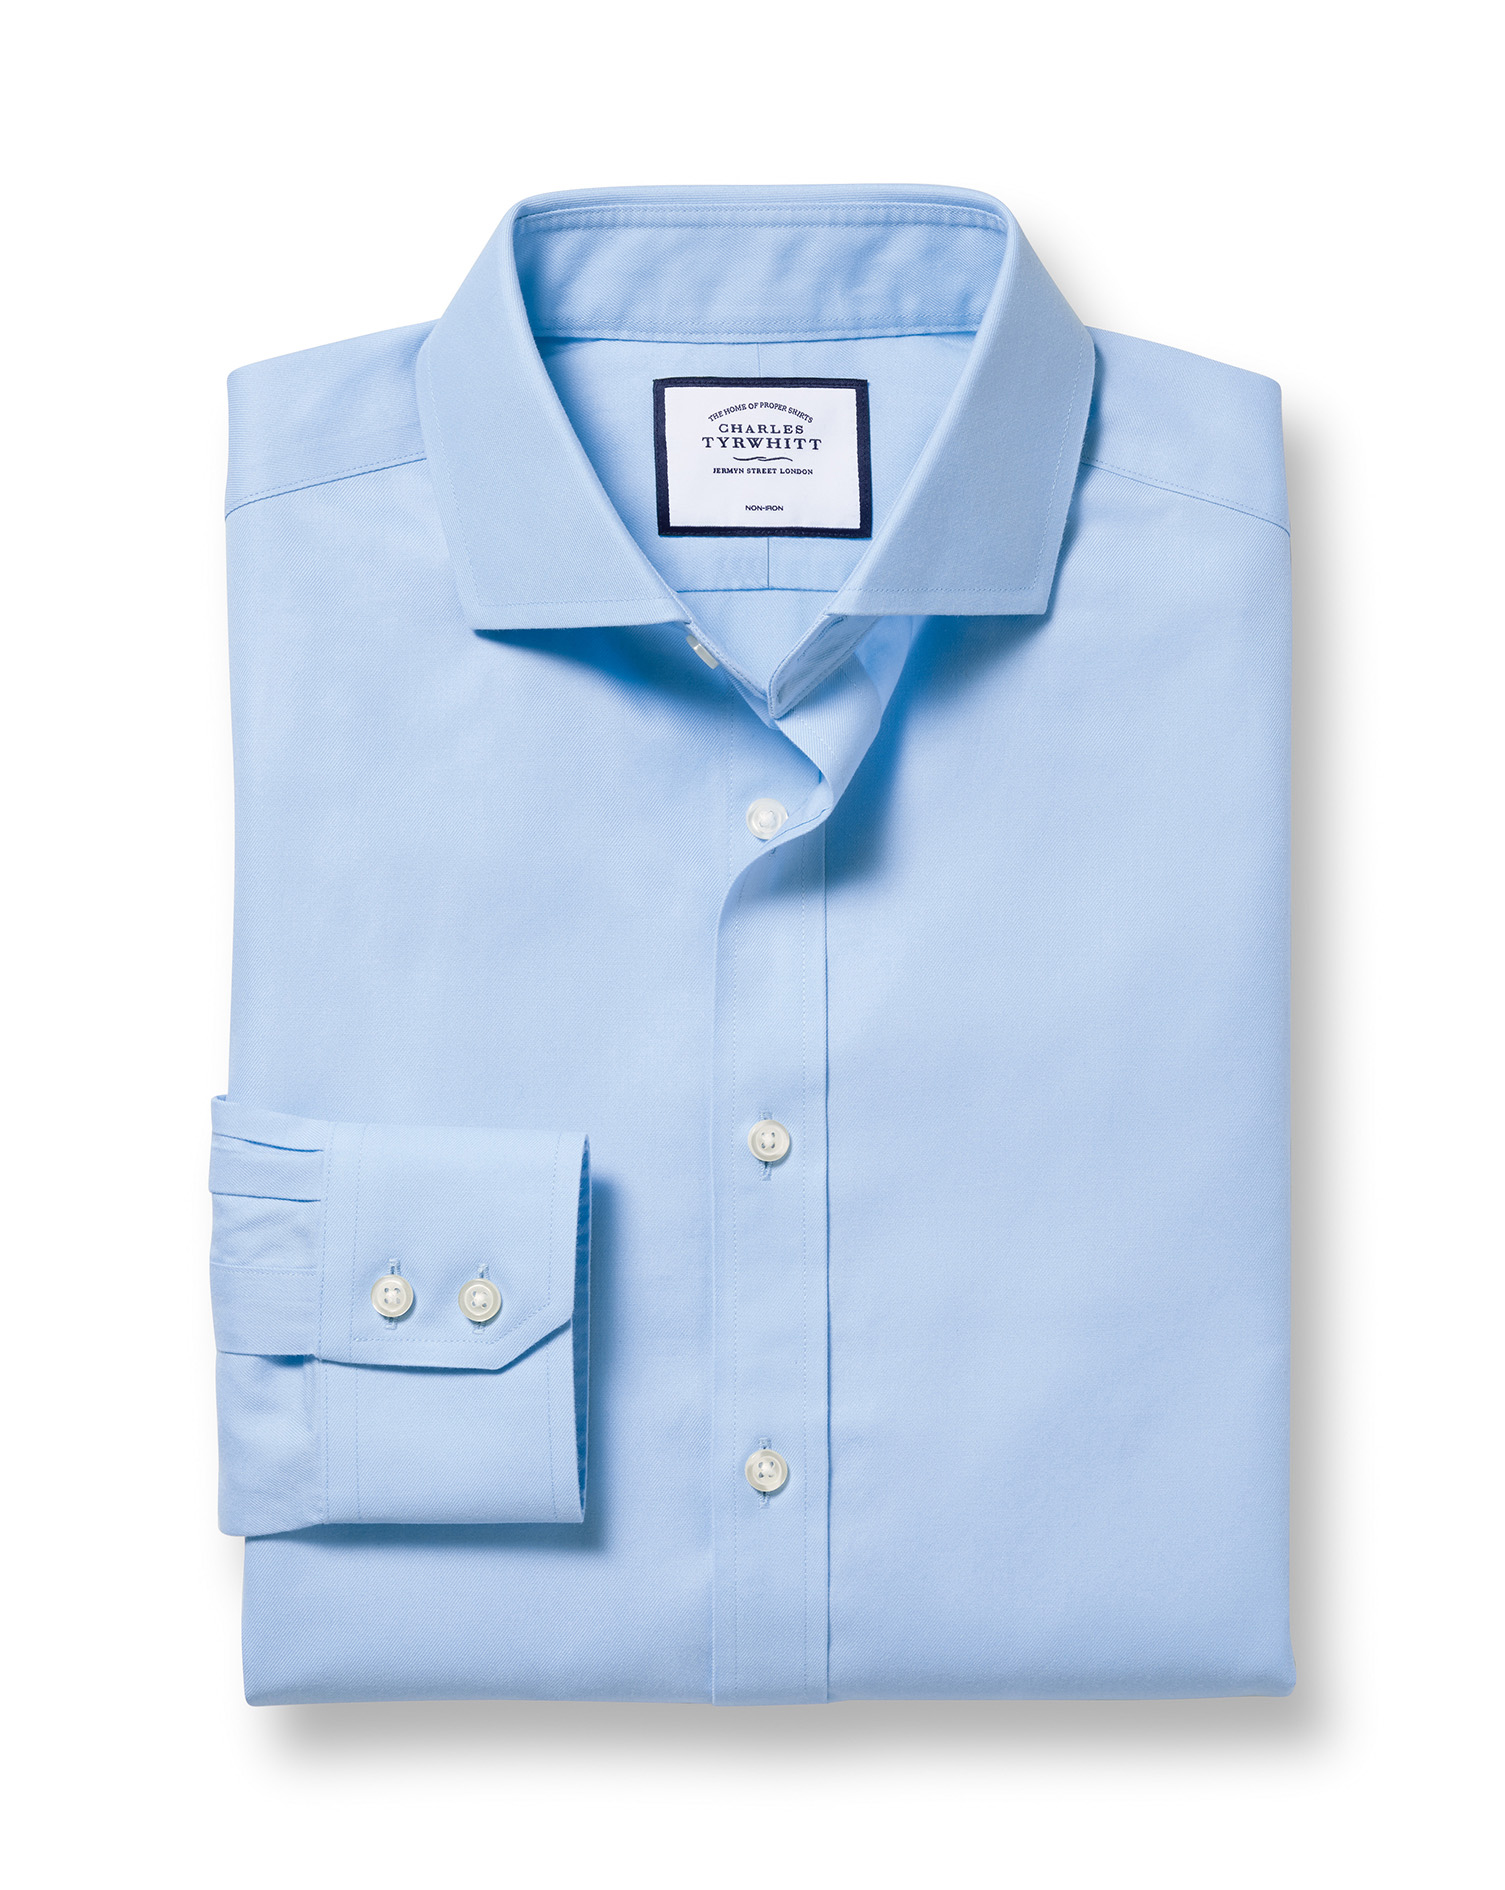 Extra Slim Fit Sky Blue Non-Iron Twill Cutaway Collar Cotton Formal Shirt Single Cuff Size 17/34 by